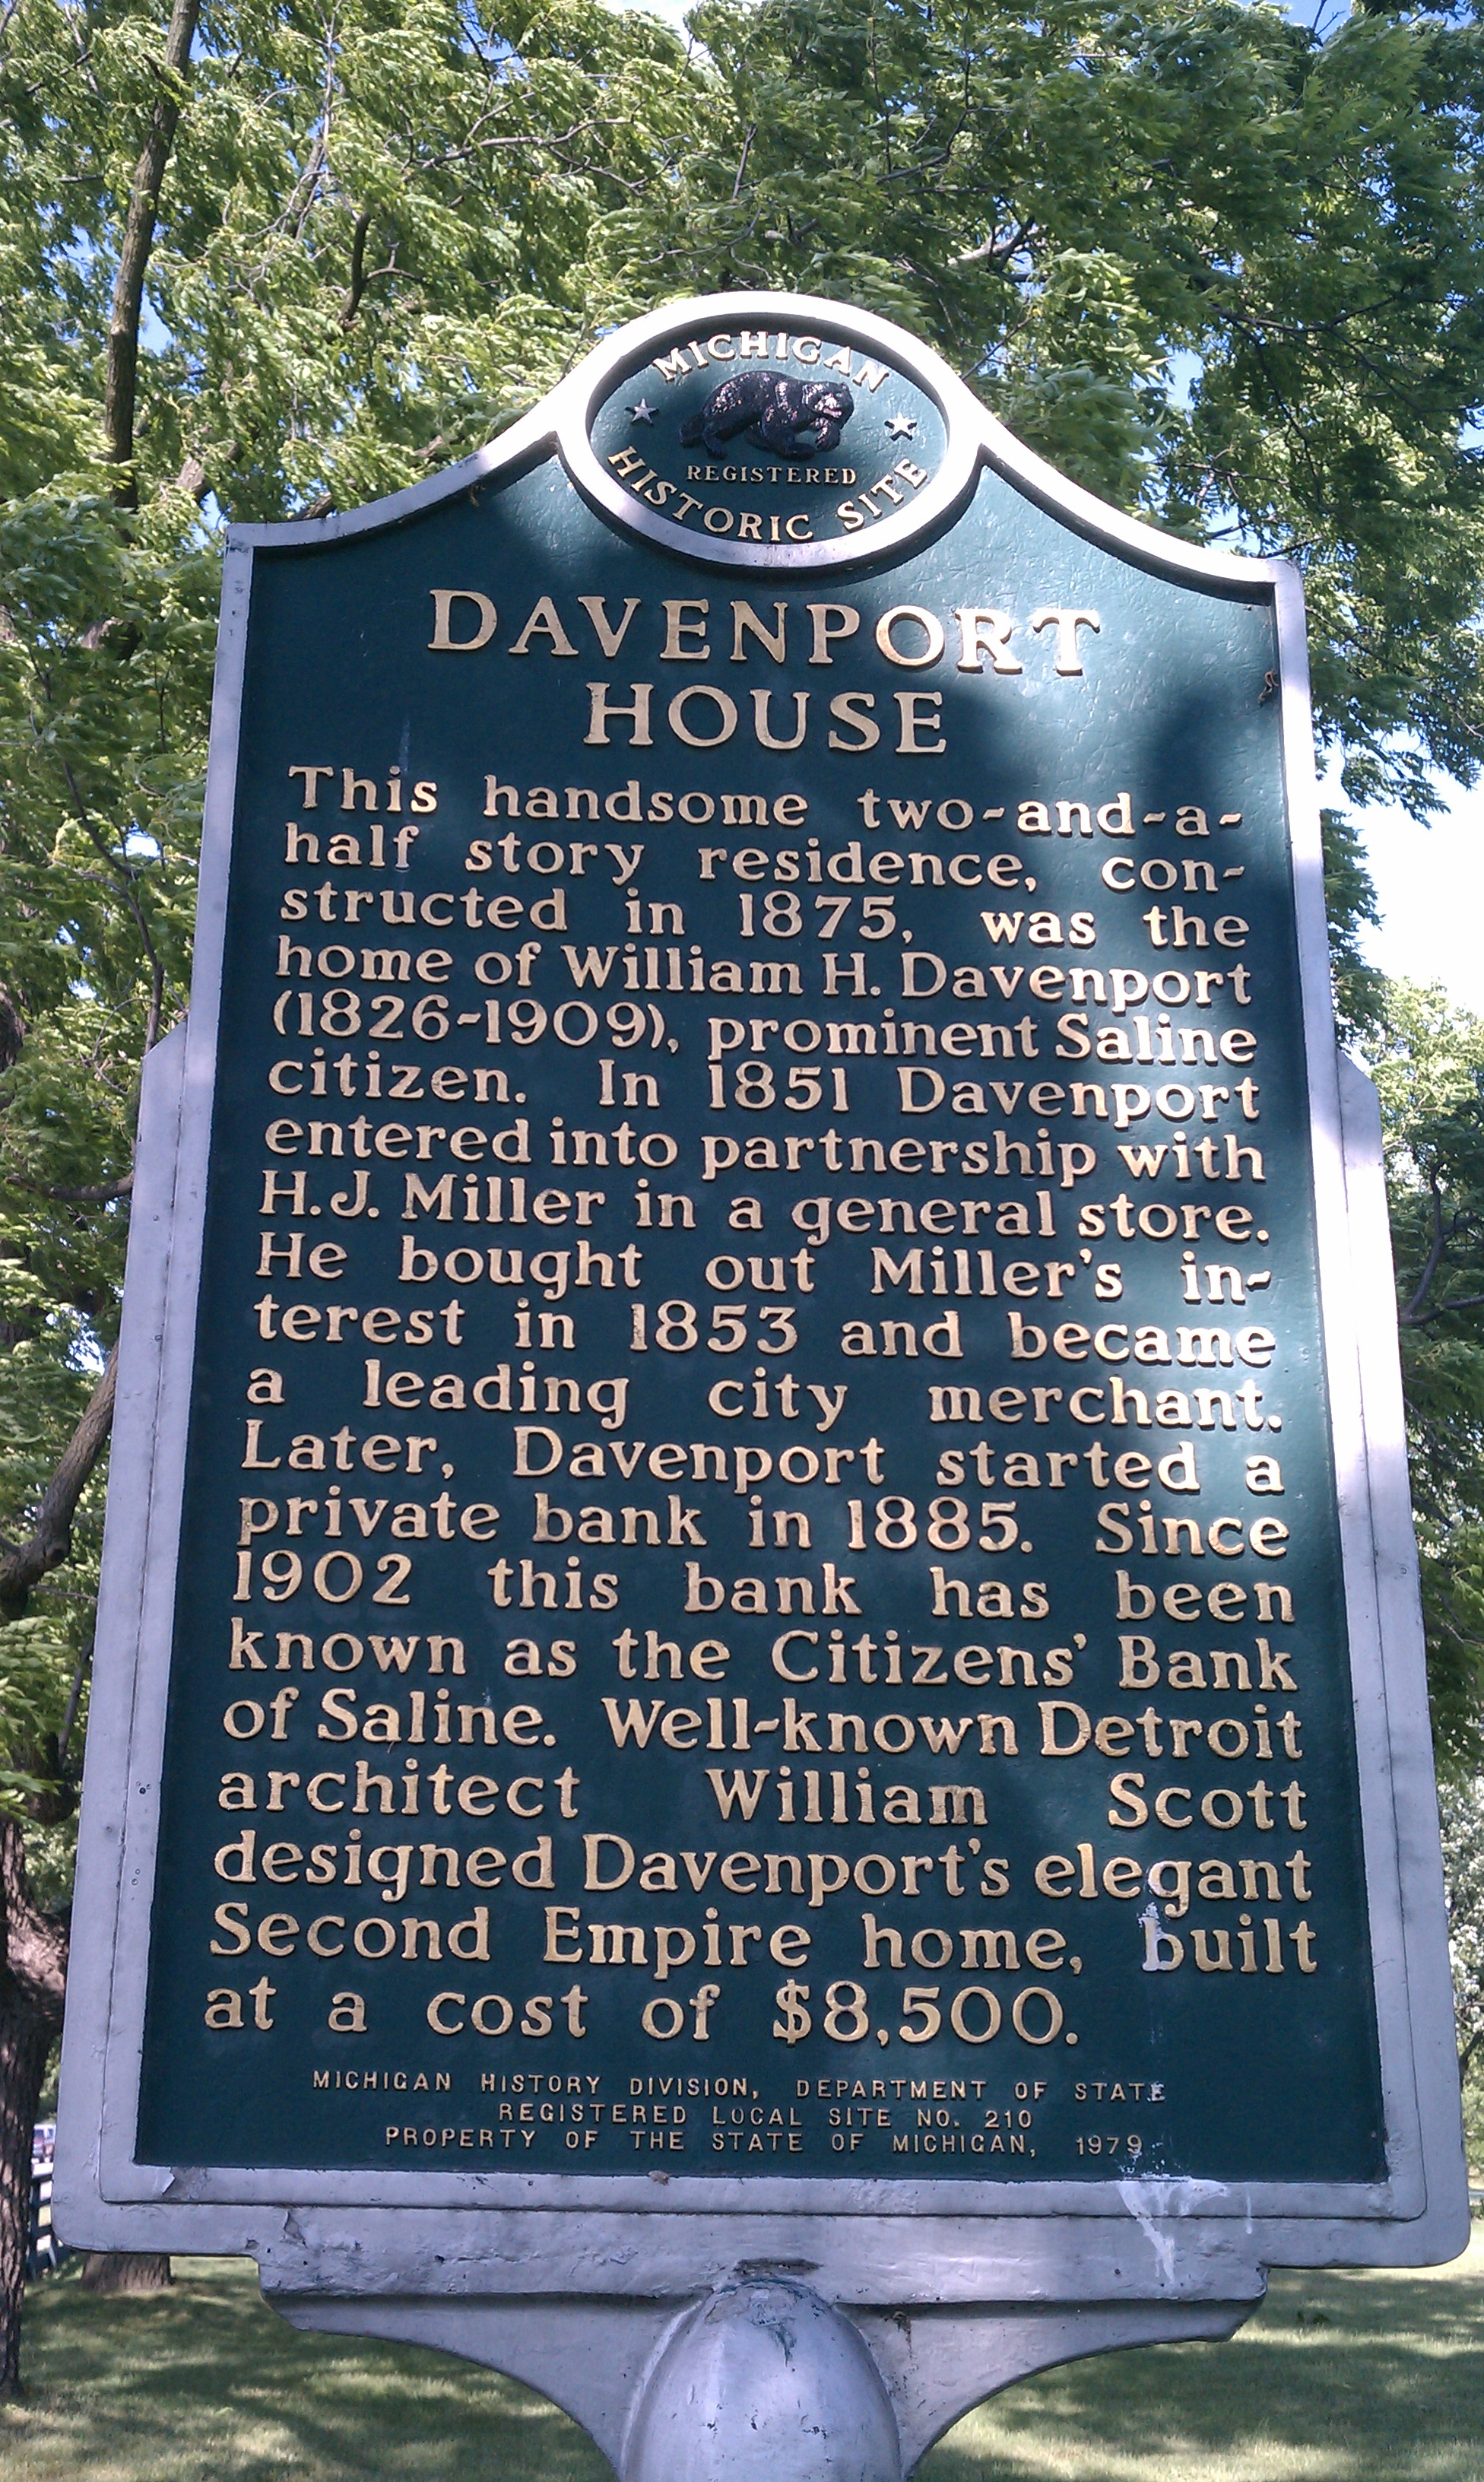 The Michigan Historic Site Marker at the Davenport House